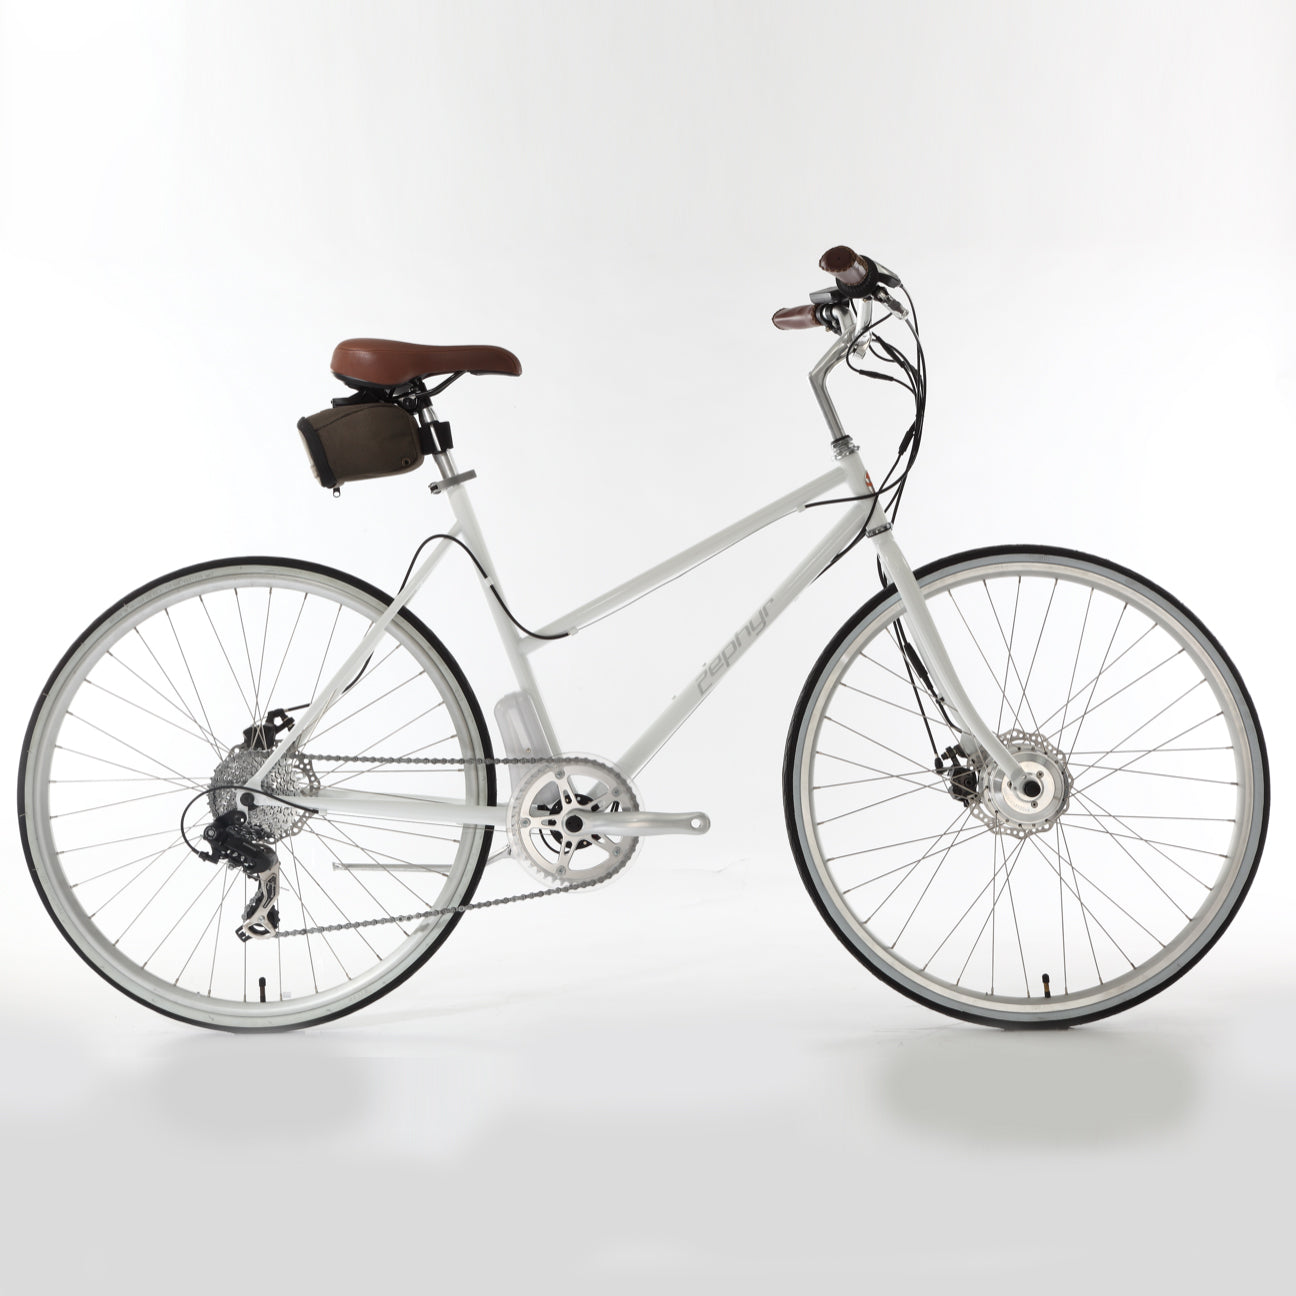 Ladies Electric Bike - Electric Bicycle For Ladies | IPG